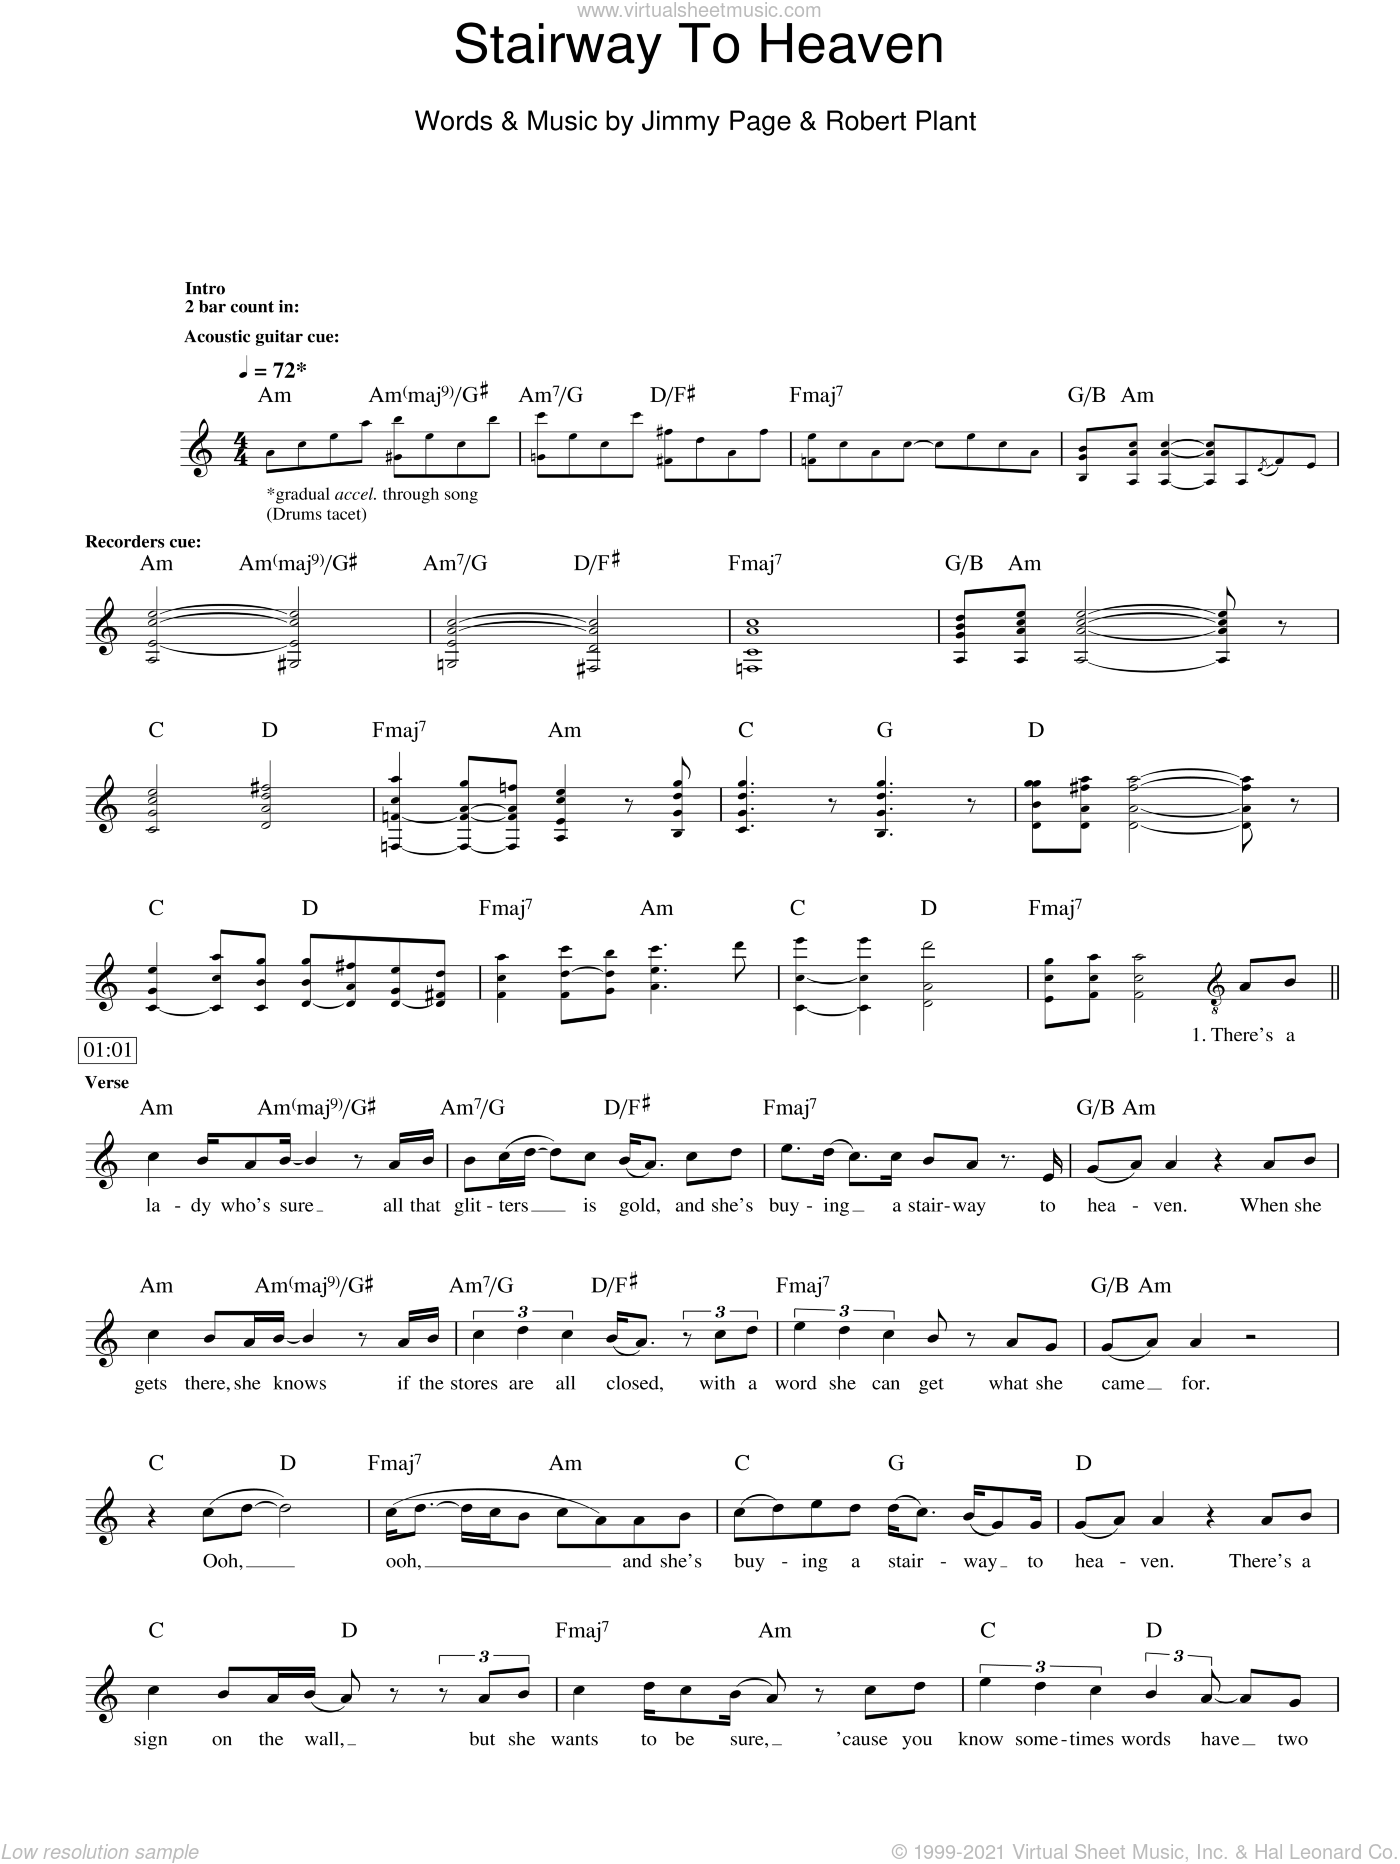 Stairway To Heaven sheet music for voice and other instruments (fake book) by Robert Plant